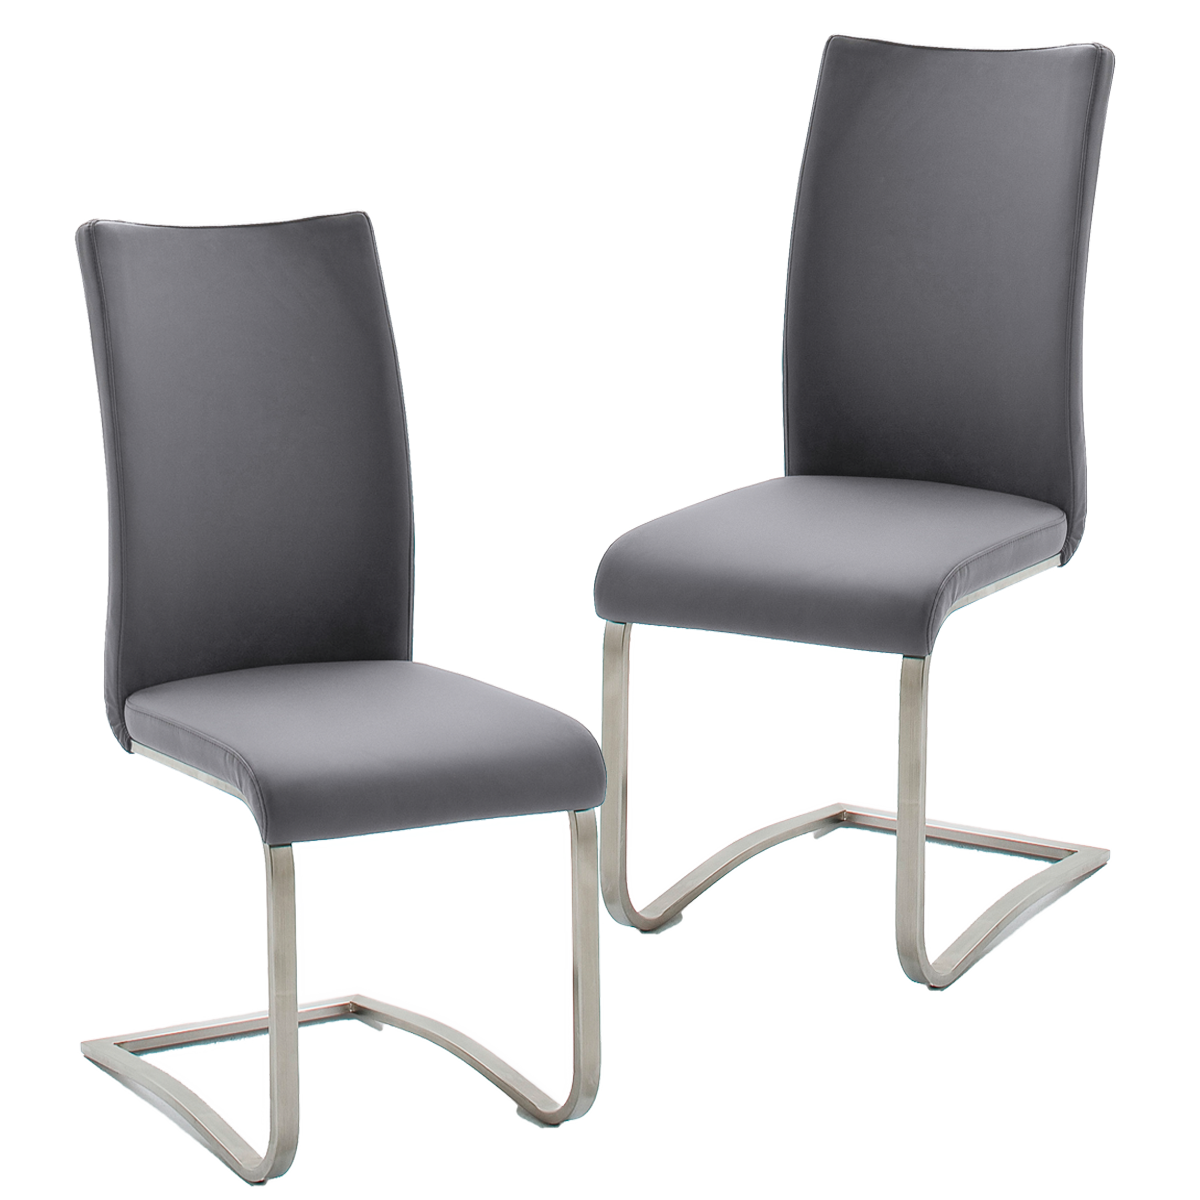 MCA furniture 2er Set Schwinger Arco II Leder grau